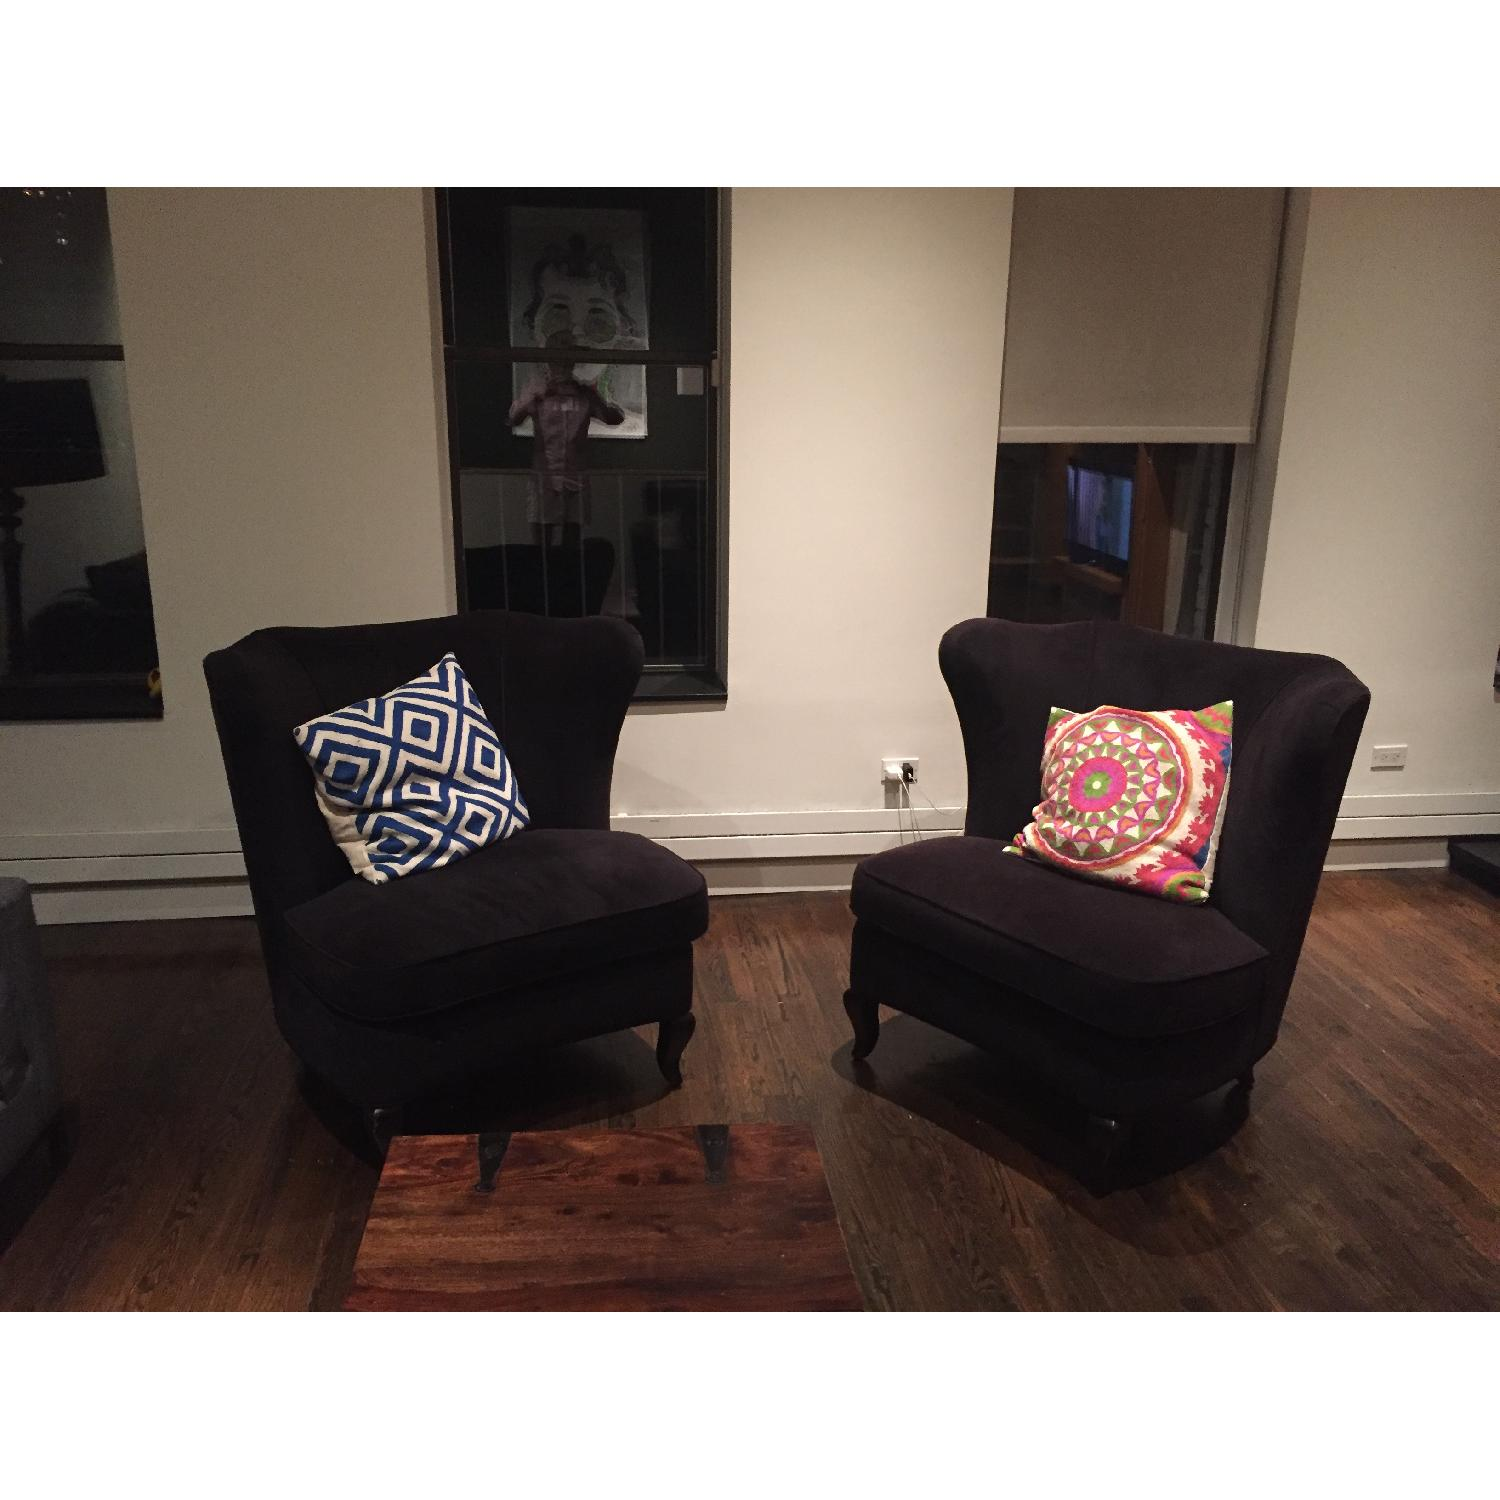 Crate & Barrel Accent Chairs - Pair - image-3